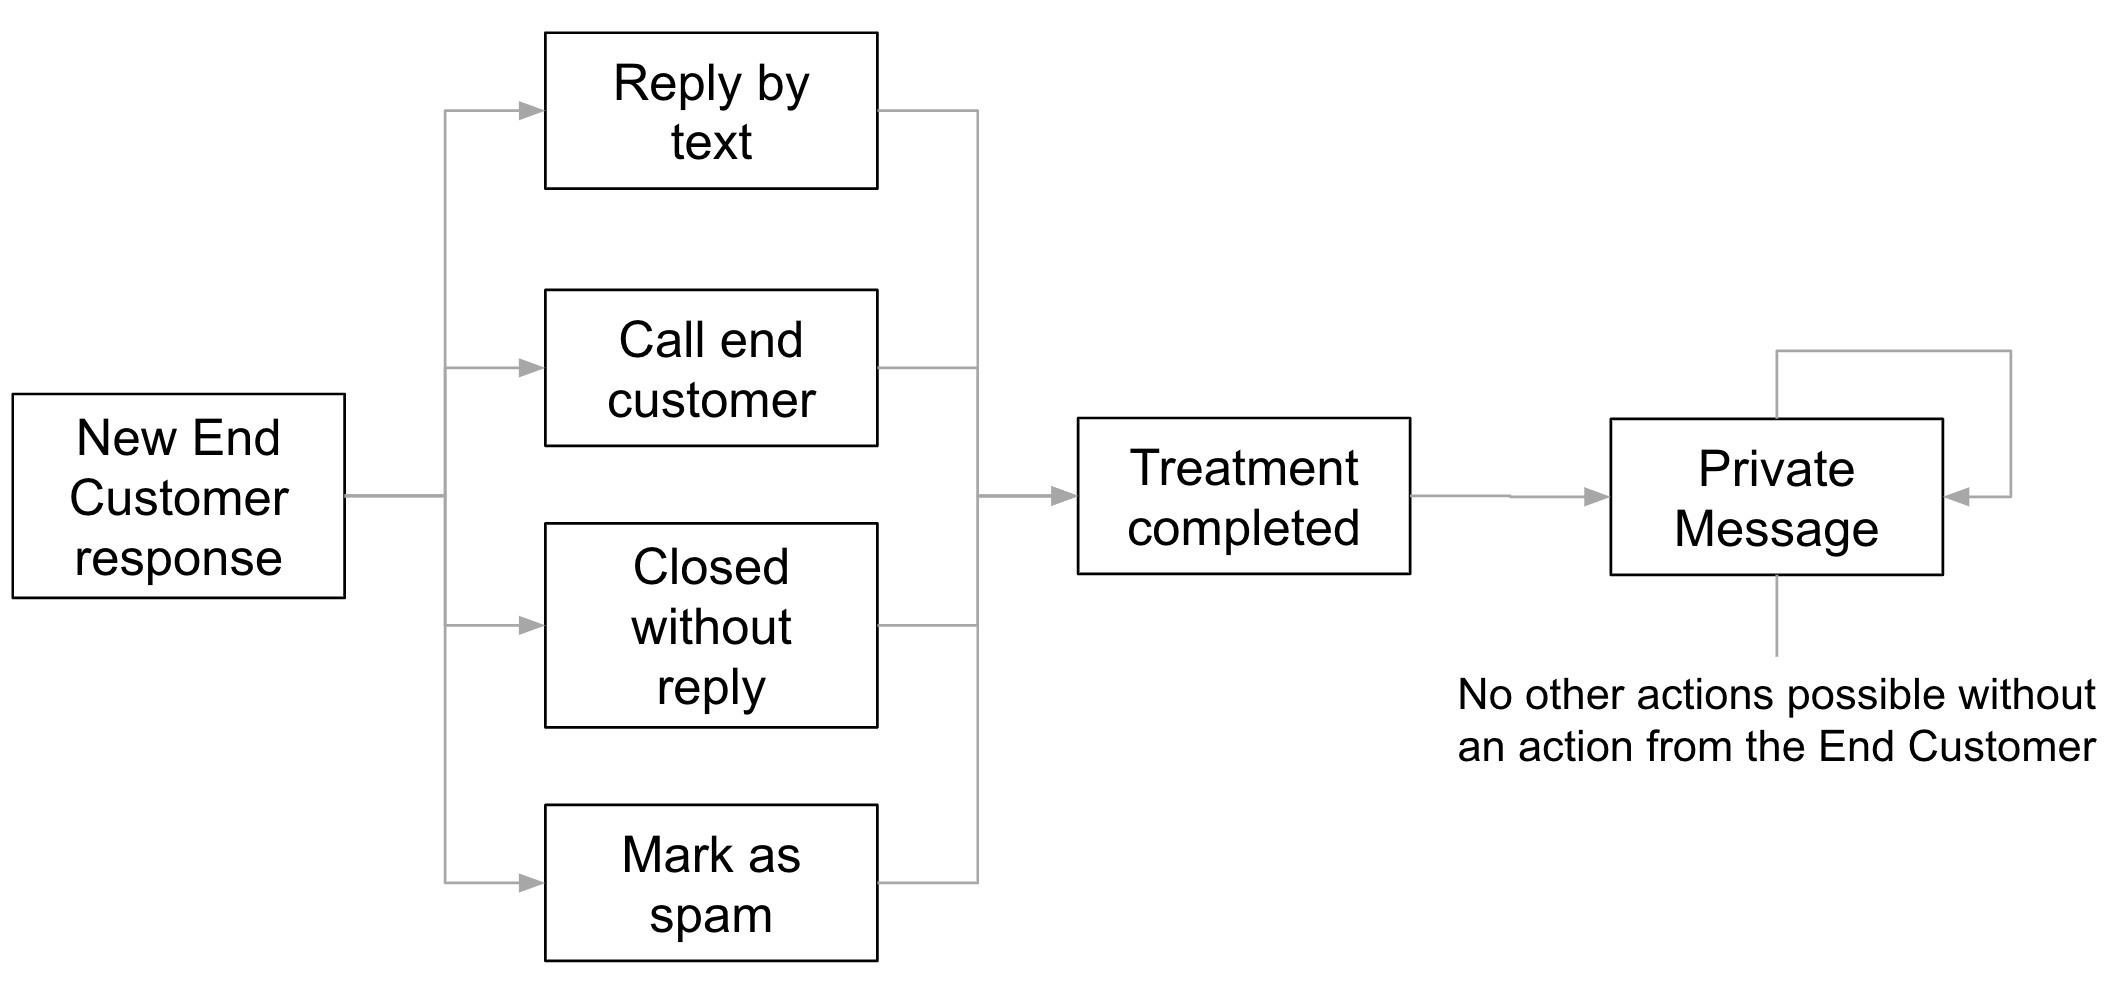 Main use case: processing of End Customer's feedback